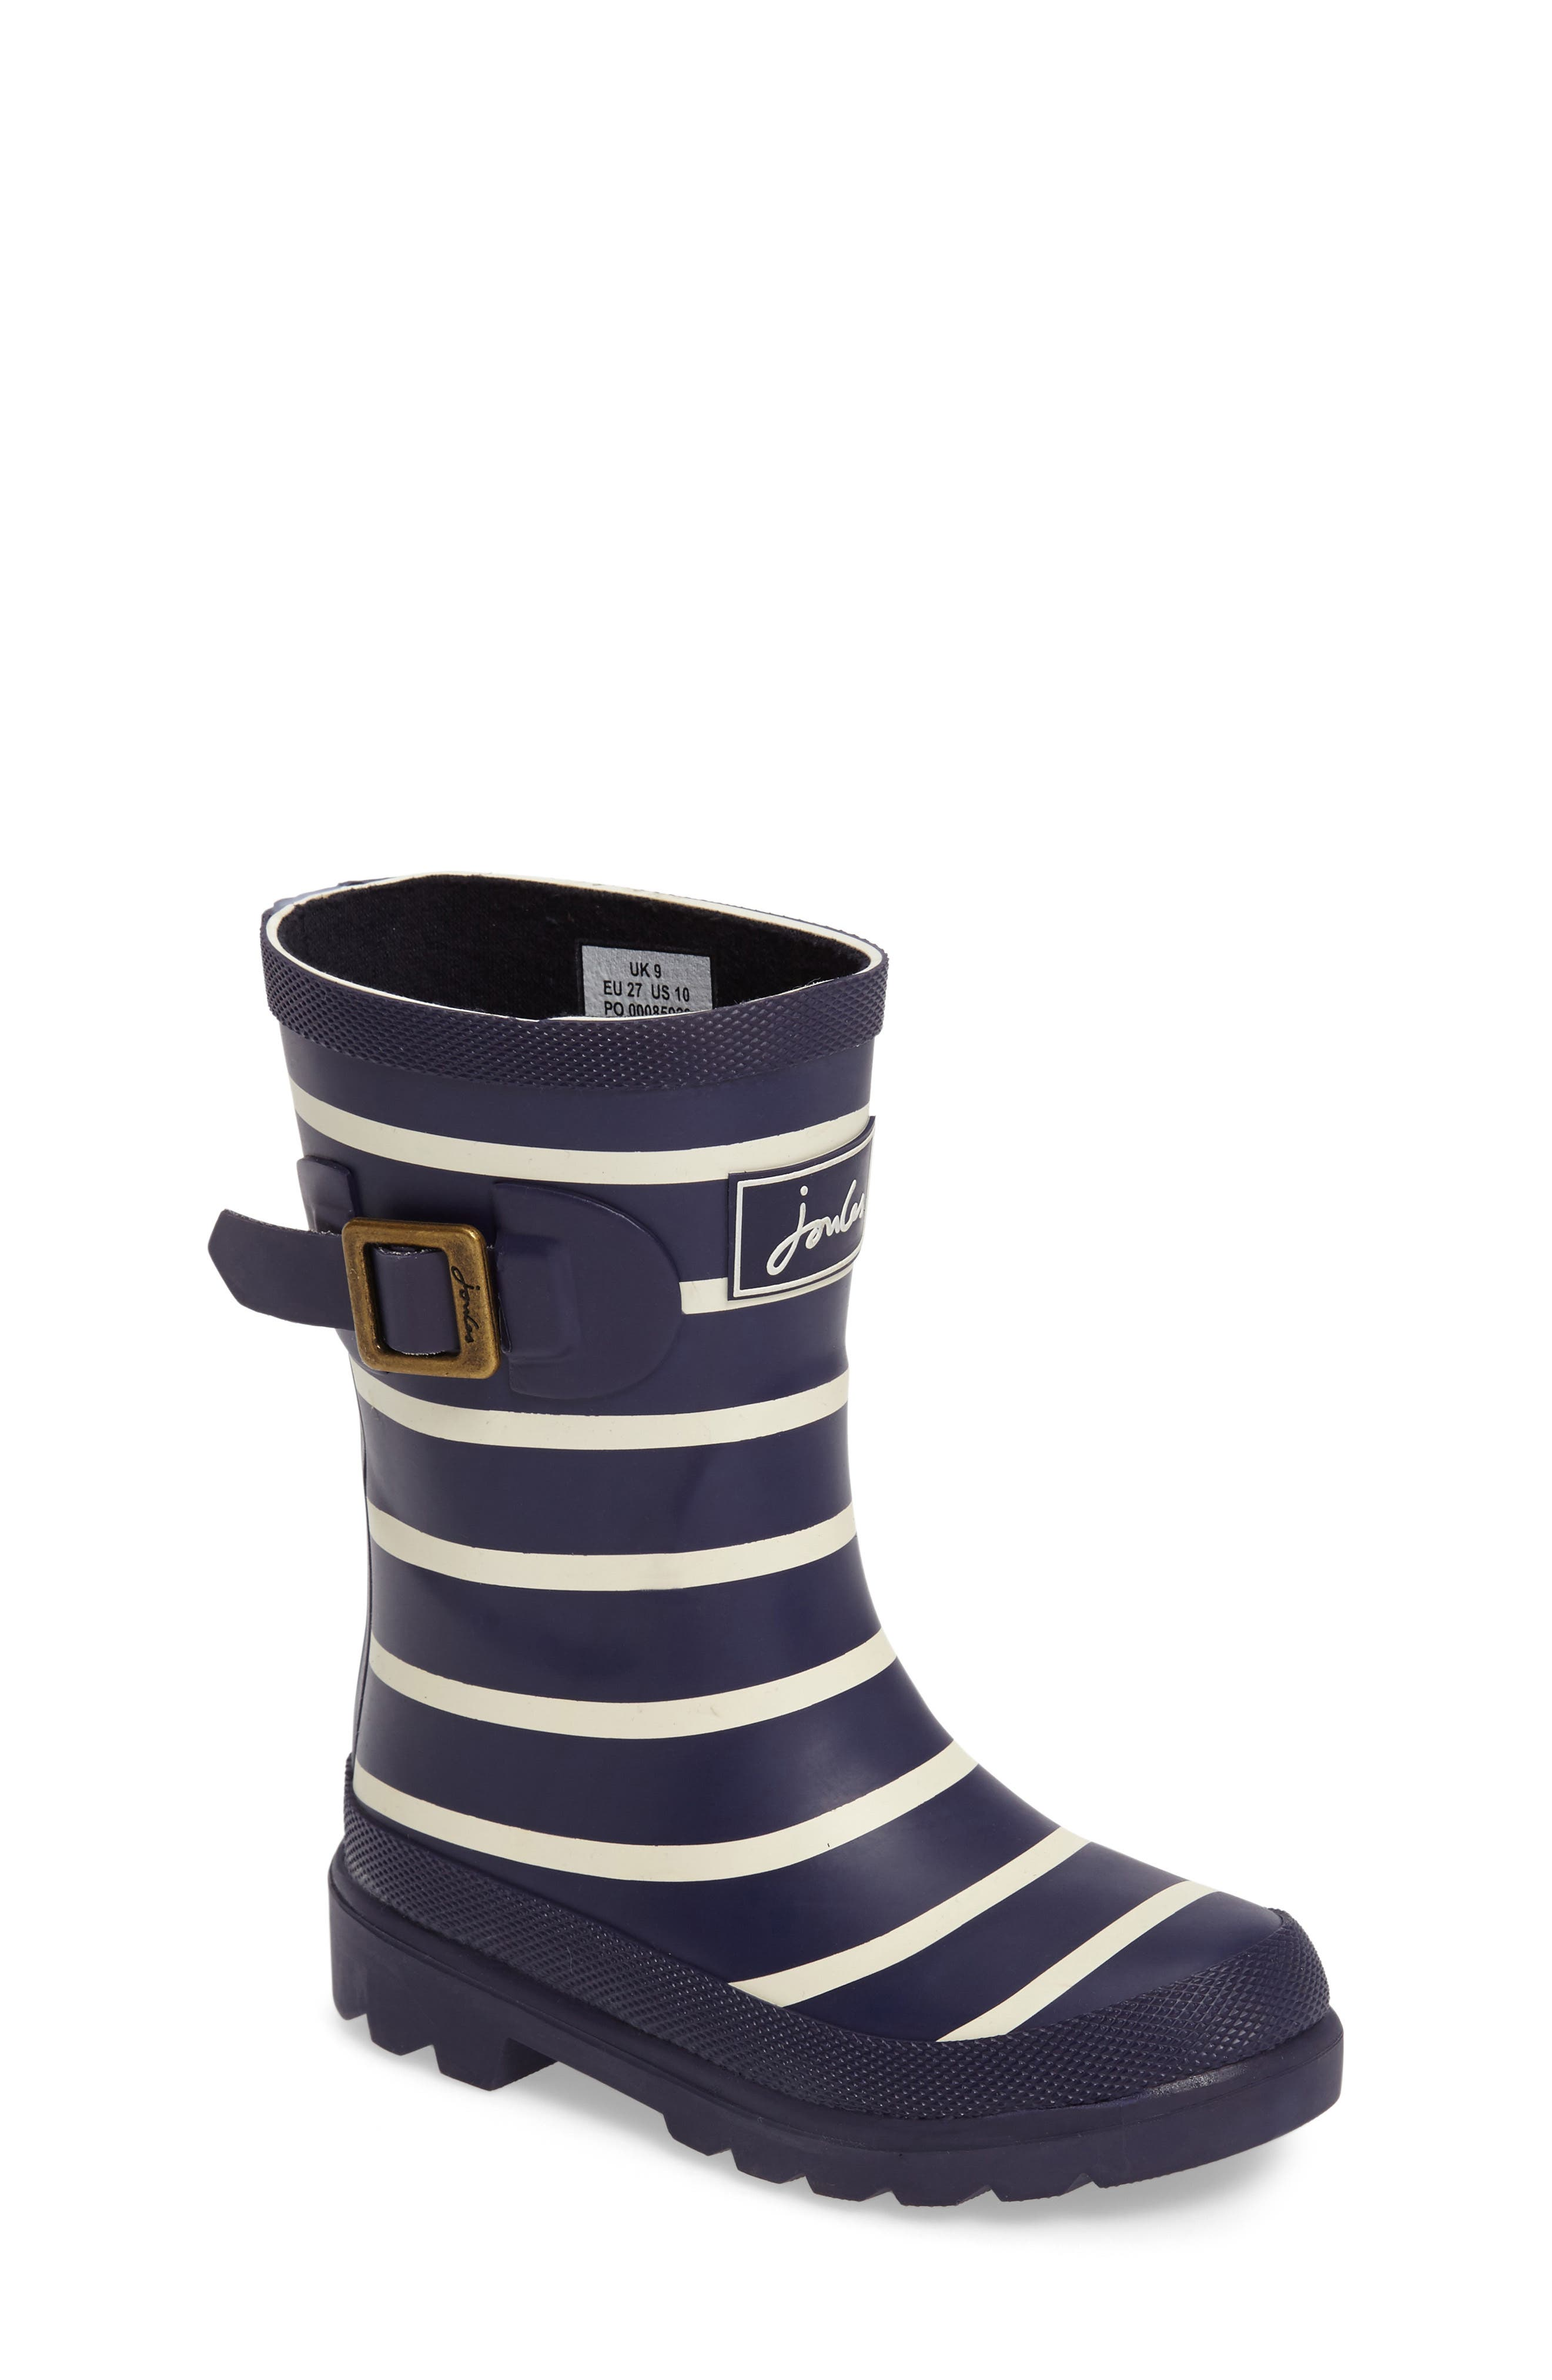 Main Image - Joules Stripe Welly Rain Boot (Walker, Toddler, Little Kid & Big Kid)